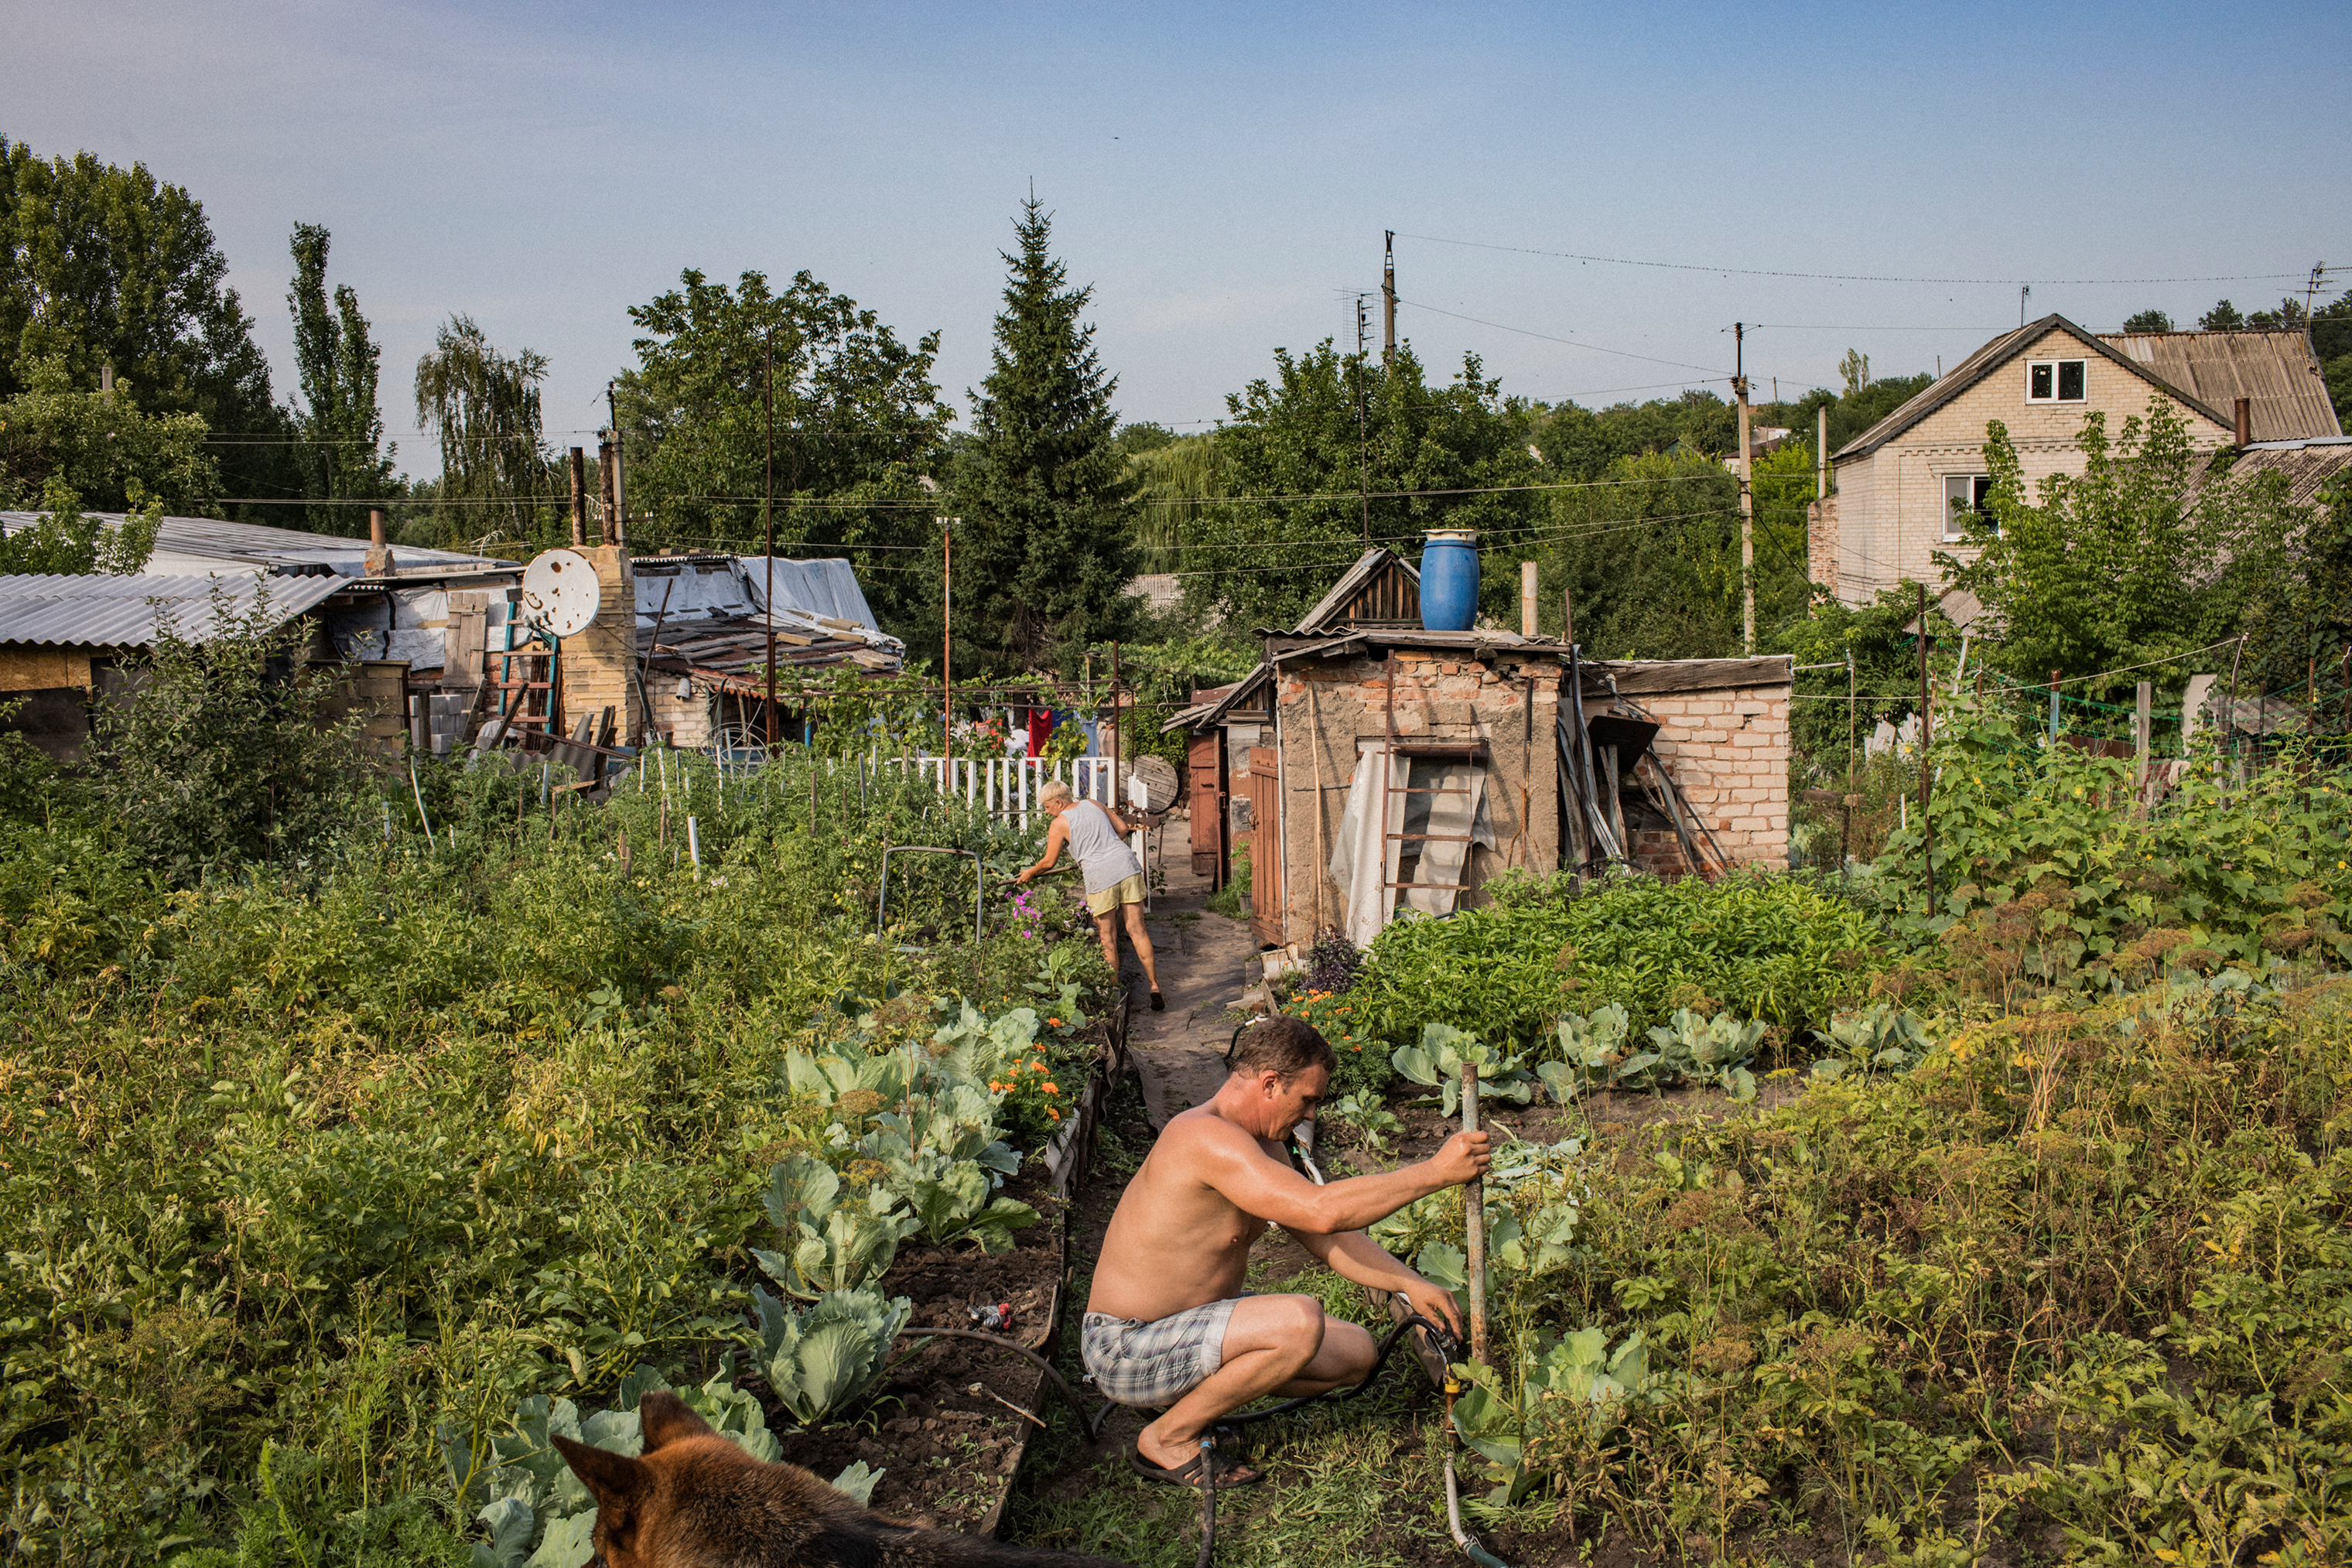 Elena Dyachkova and Aleksander Dokalenko garden in their backyard in old Avdeevka. Their property has been shelled multiple times and the house has received three direct hits. Often they find bullets and shrapnel among their tomato and cucumber beds.